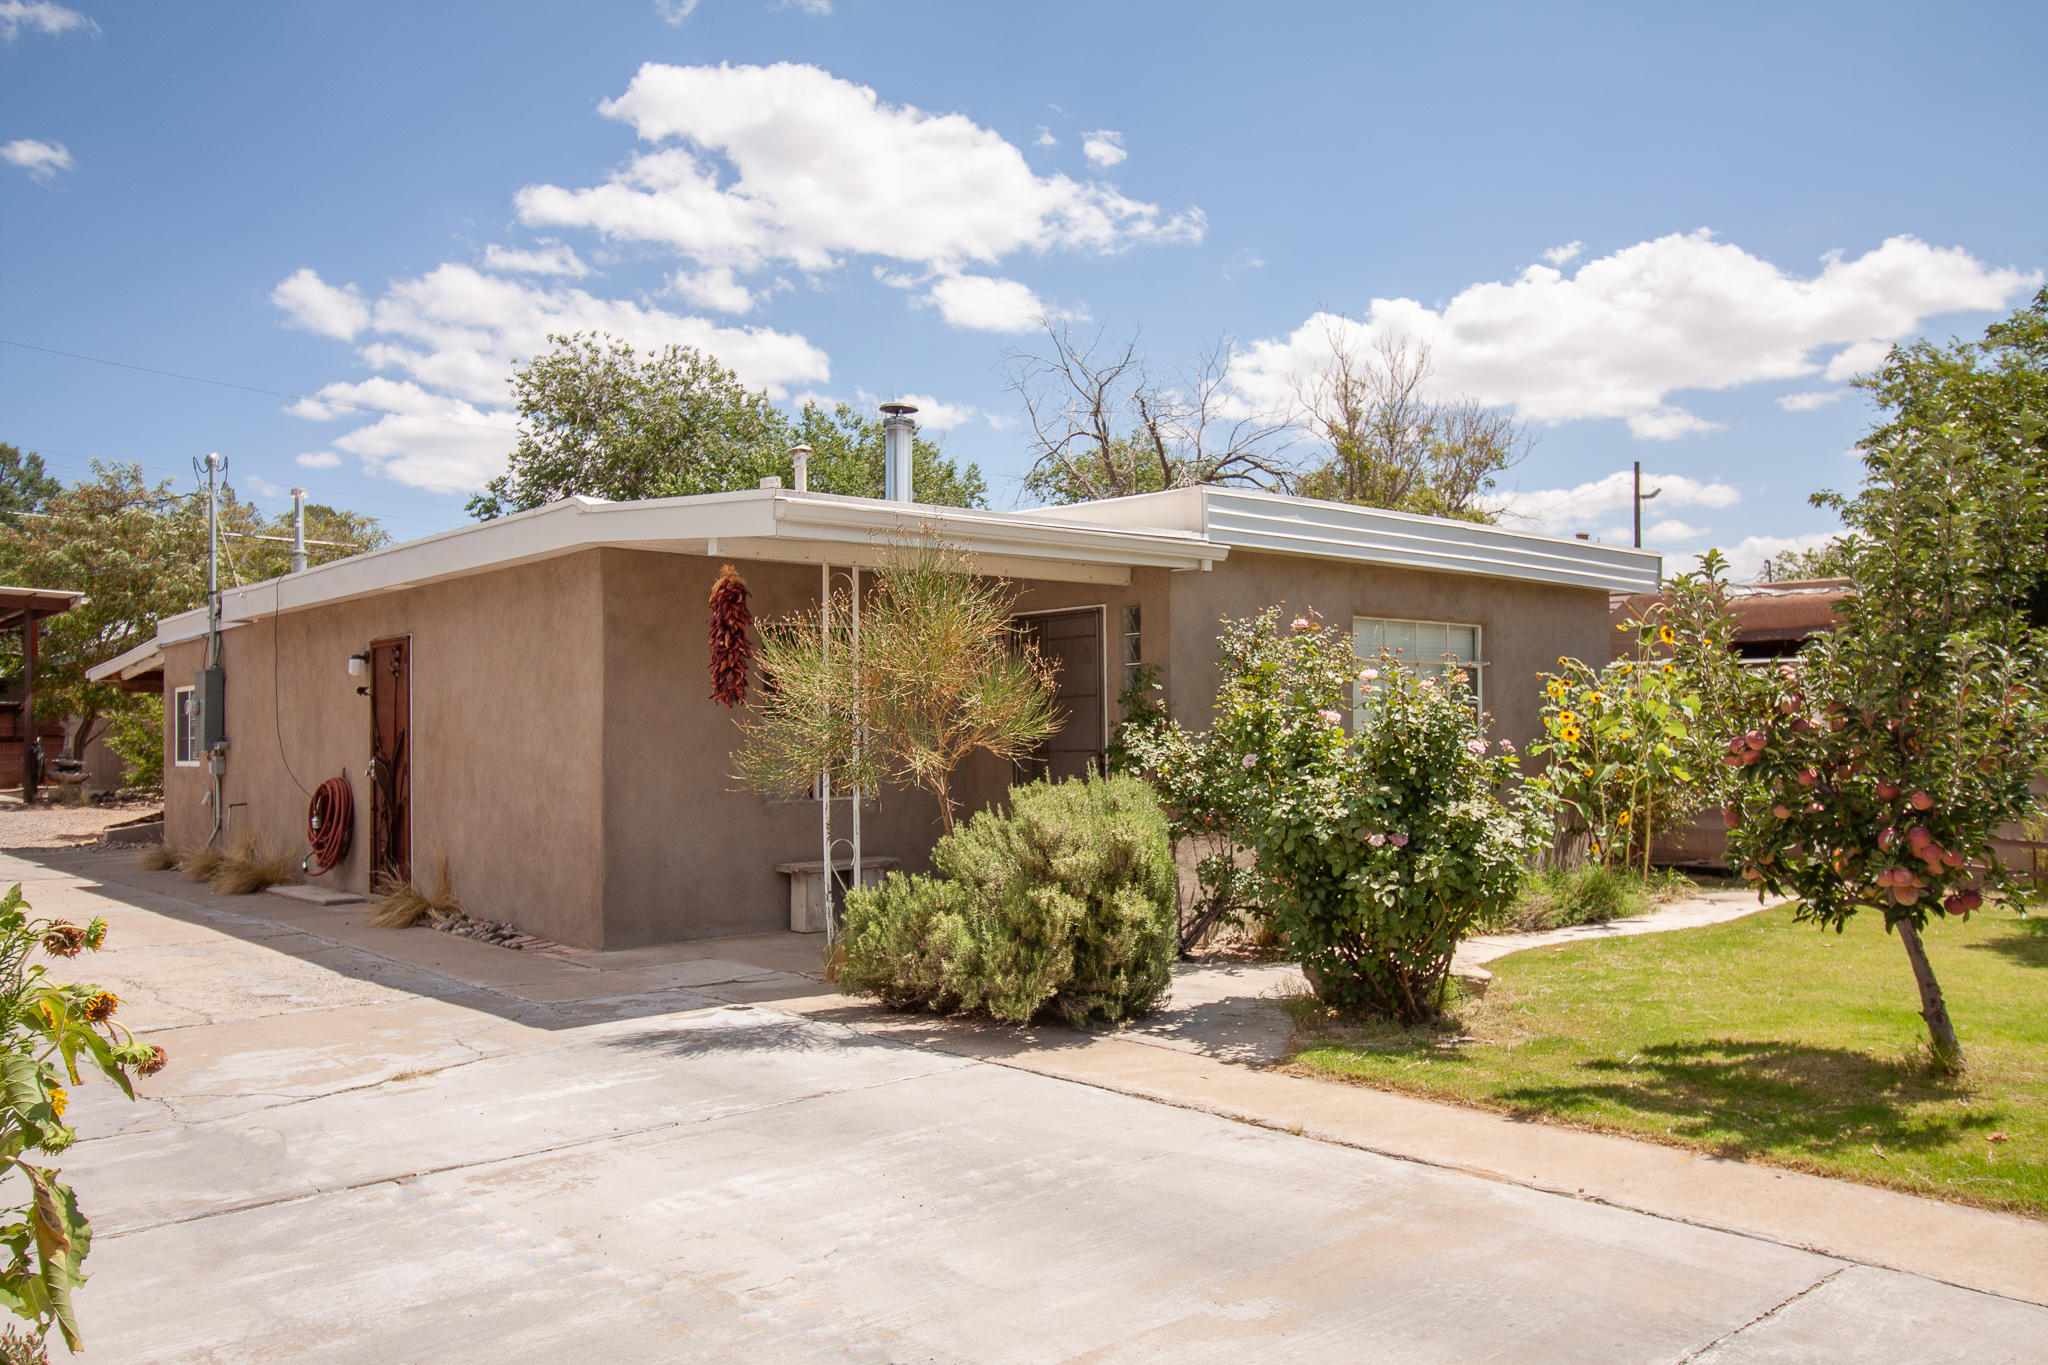 BACK ON MARKET! BUYERS FINANCING FELL THROUGH! Welcome to your urban oasis! Conveniently located near I-40, the Uptown shopping district, and tons of restaurants. This 1950's charmer boasts new floors, new roof, new stucco, automatic driveway gate, wood stove, upgraded 200 amp electrical service, and a finished (heated and cooled) artist's studio. The yard is fully fenced with the potential to grow a beautiful garden. The custom steel carport is fit for all your cars,  rv's and toys! All the custom steel security doors and extras really make this home special. Pride of ownership is an understatement in this home that truly make it a gem. Don't miss this chance to own a great home!